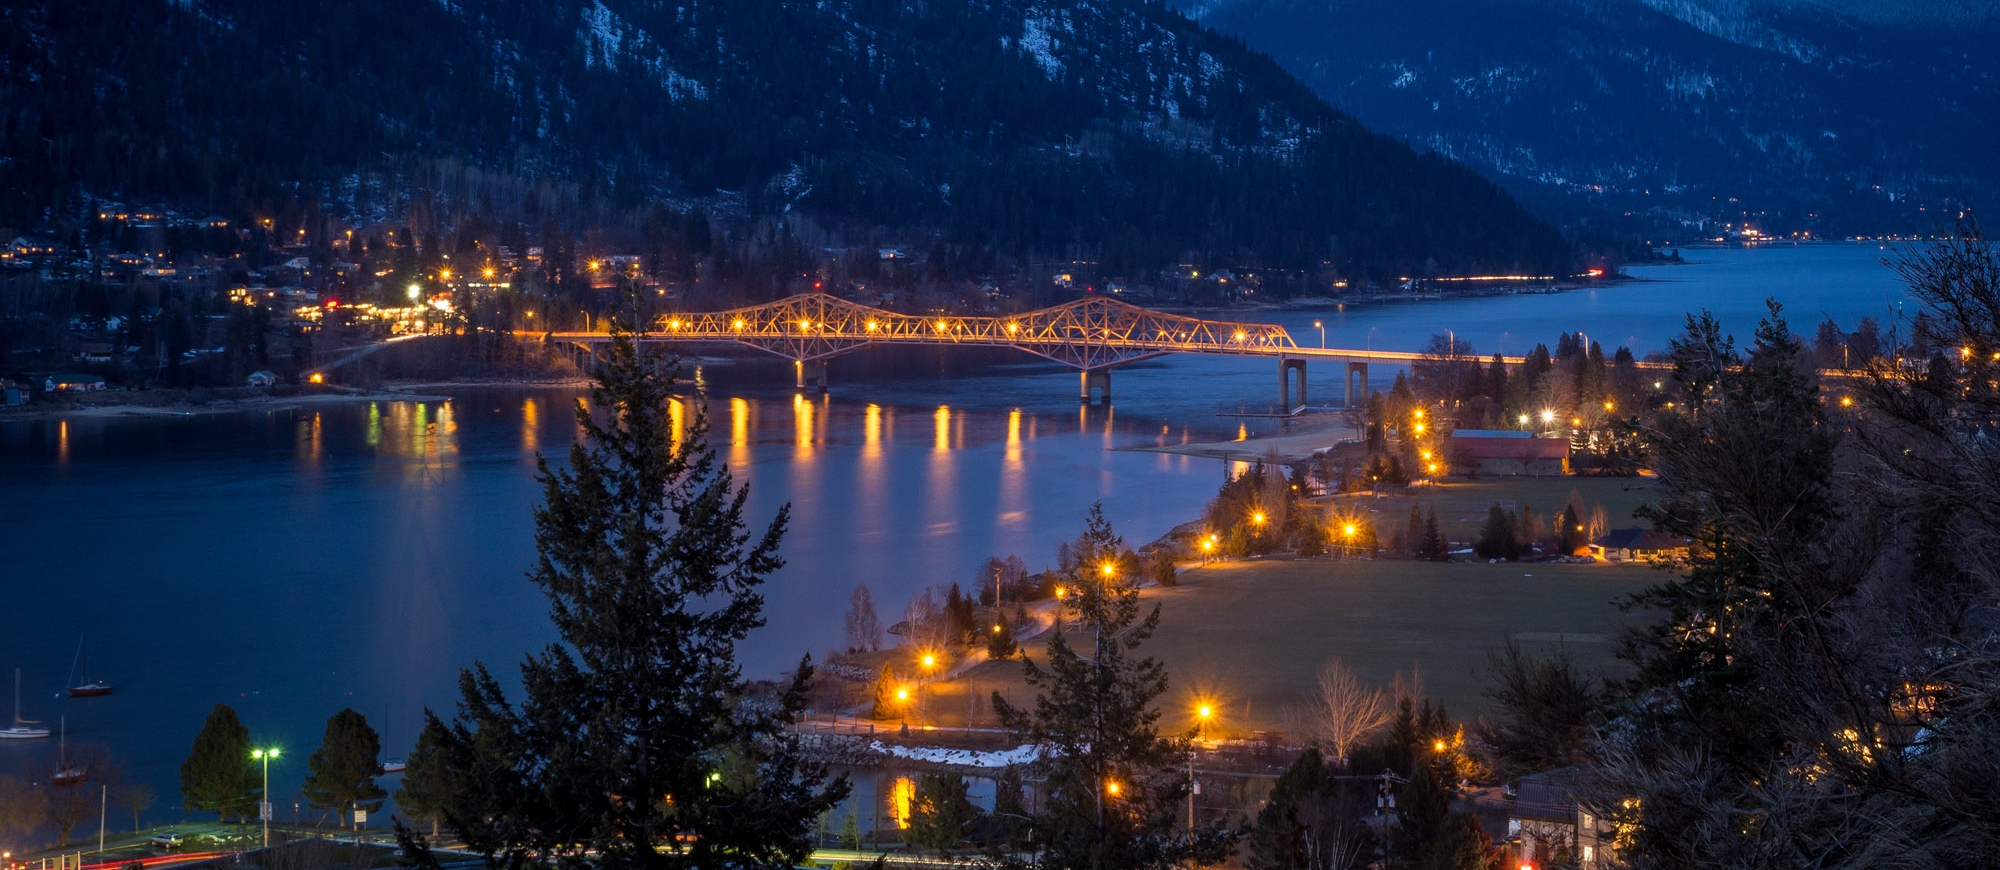 Nelson, BC and the Big Orange Bridge lit up at night.